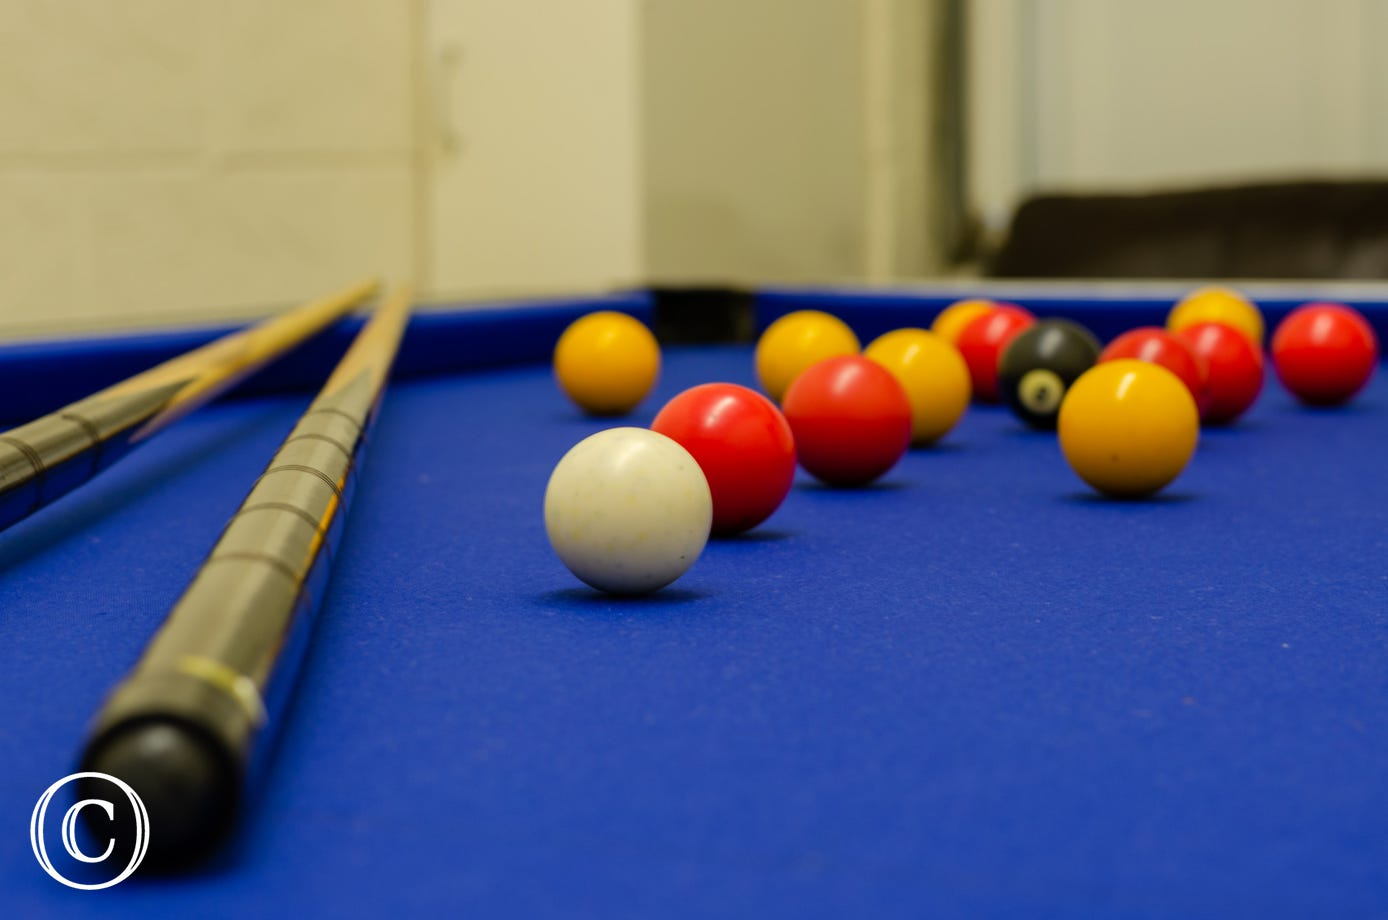 Fully equipped pool table